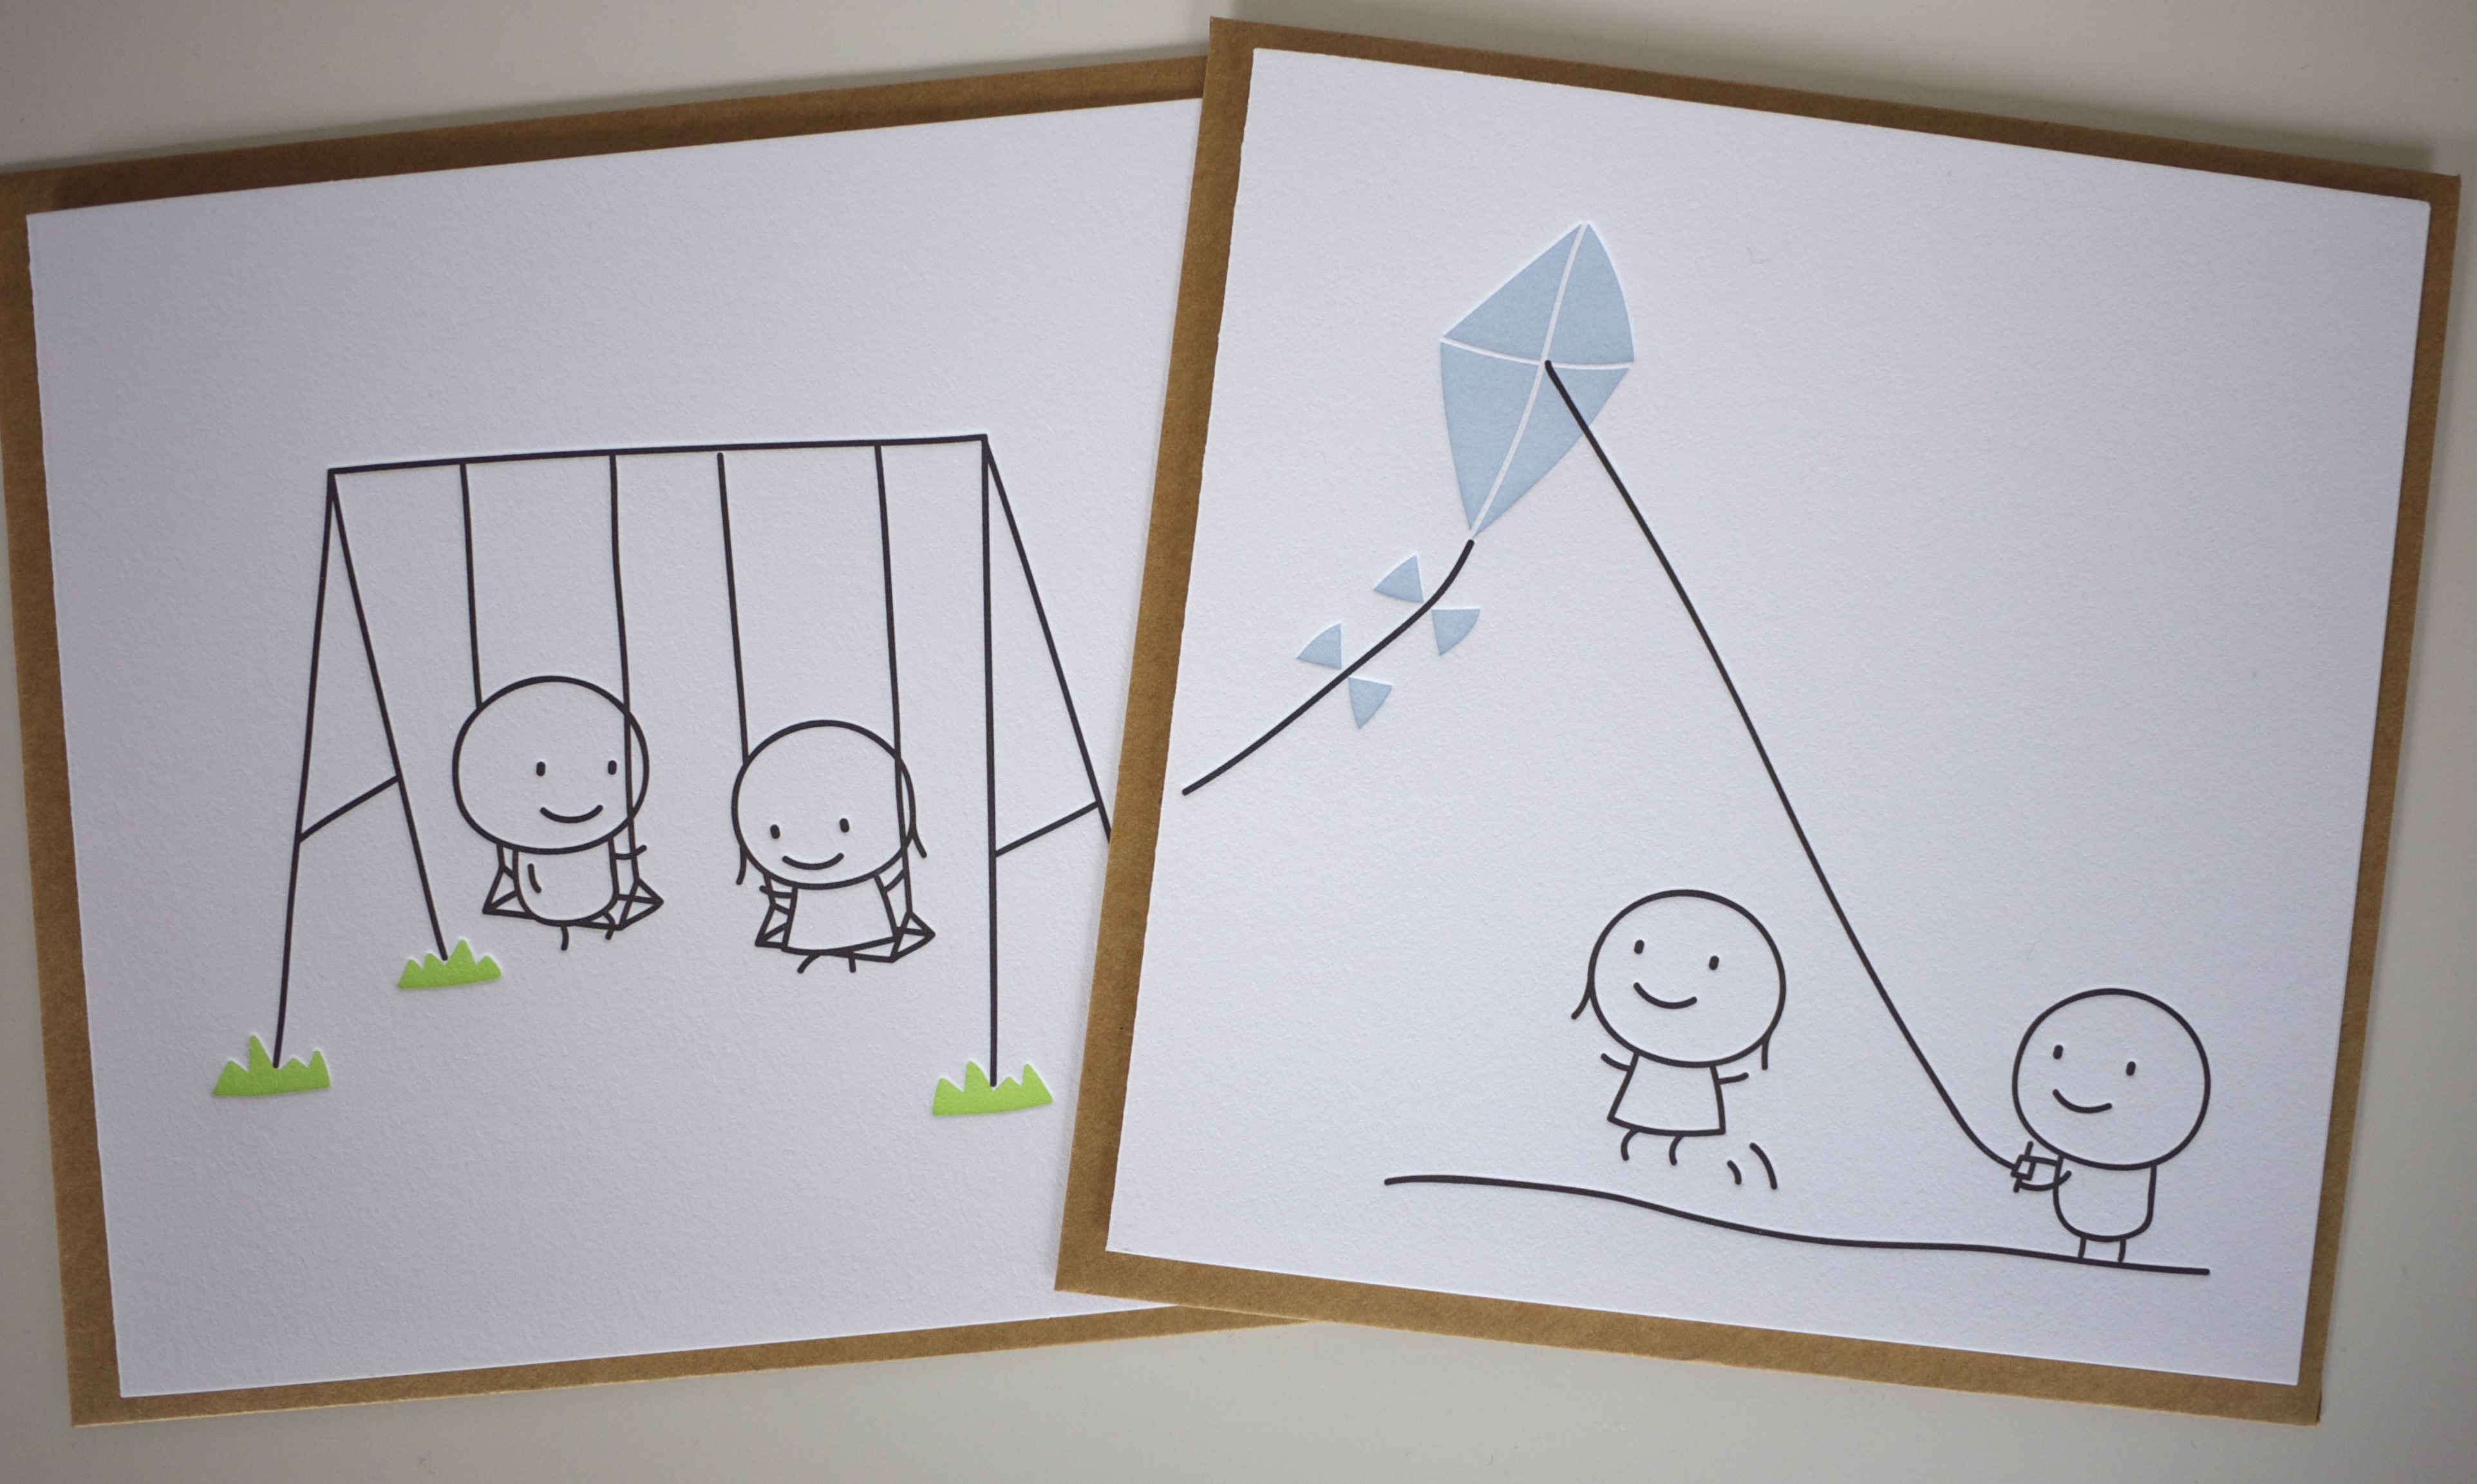 Greeting Cards from TJ Stationery